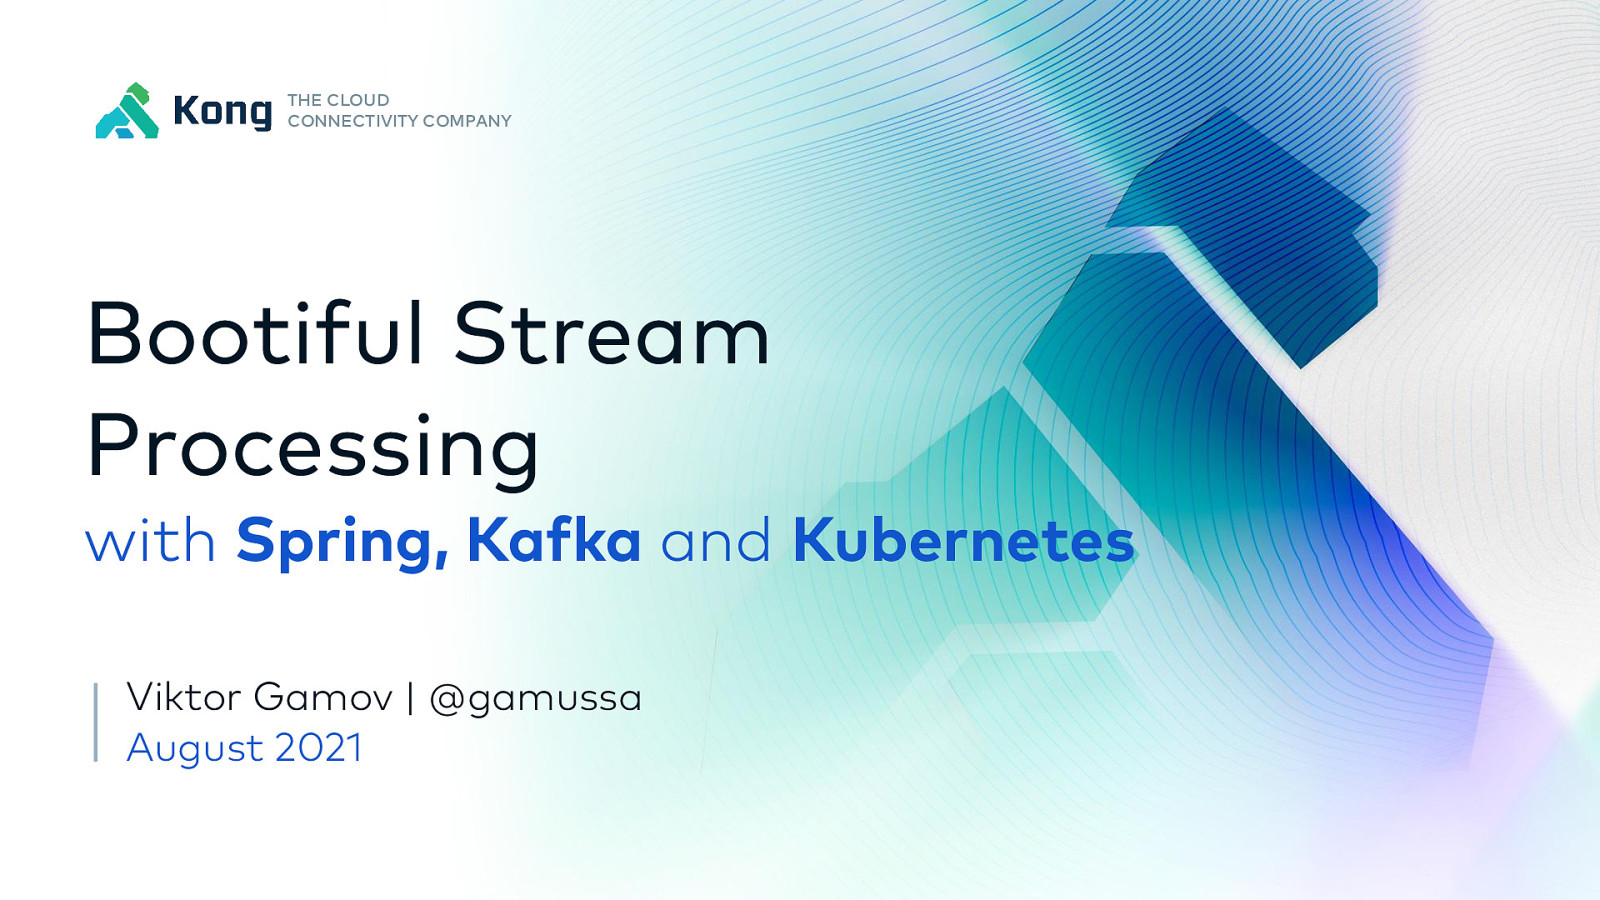 Bootiful Stream Processing with Spring and Kafka